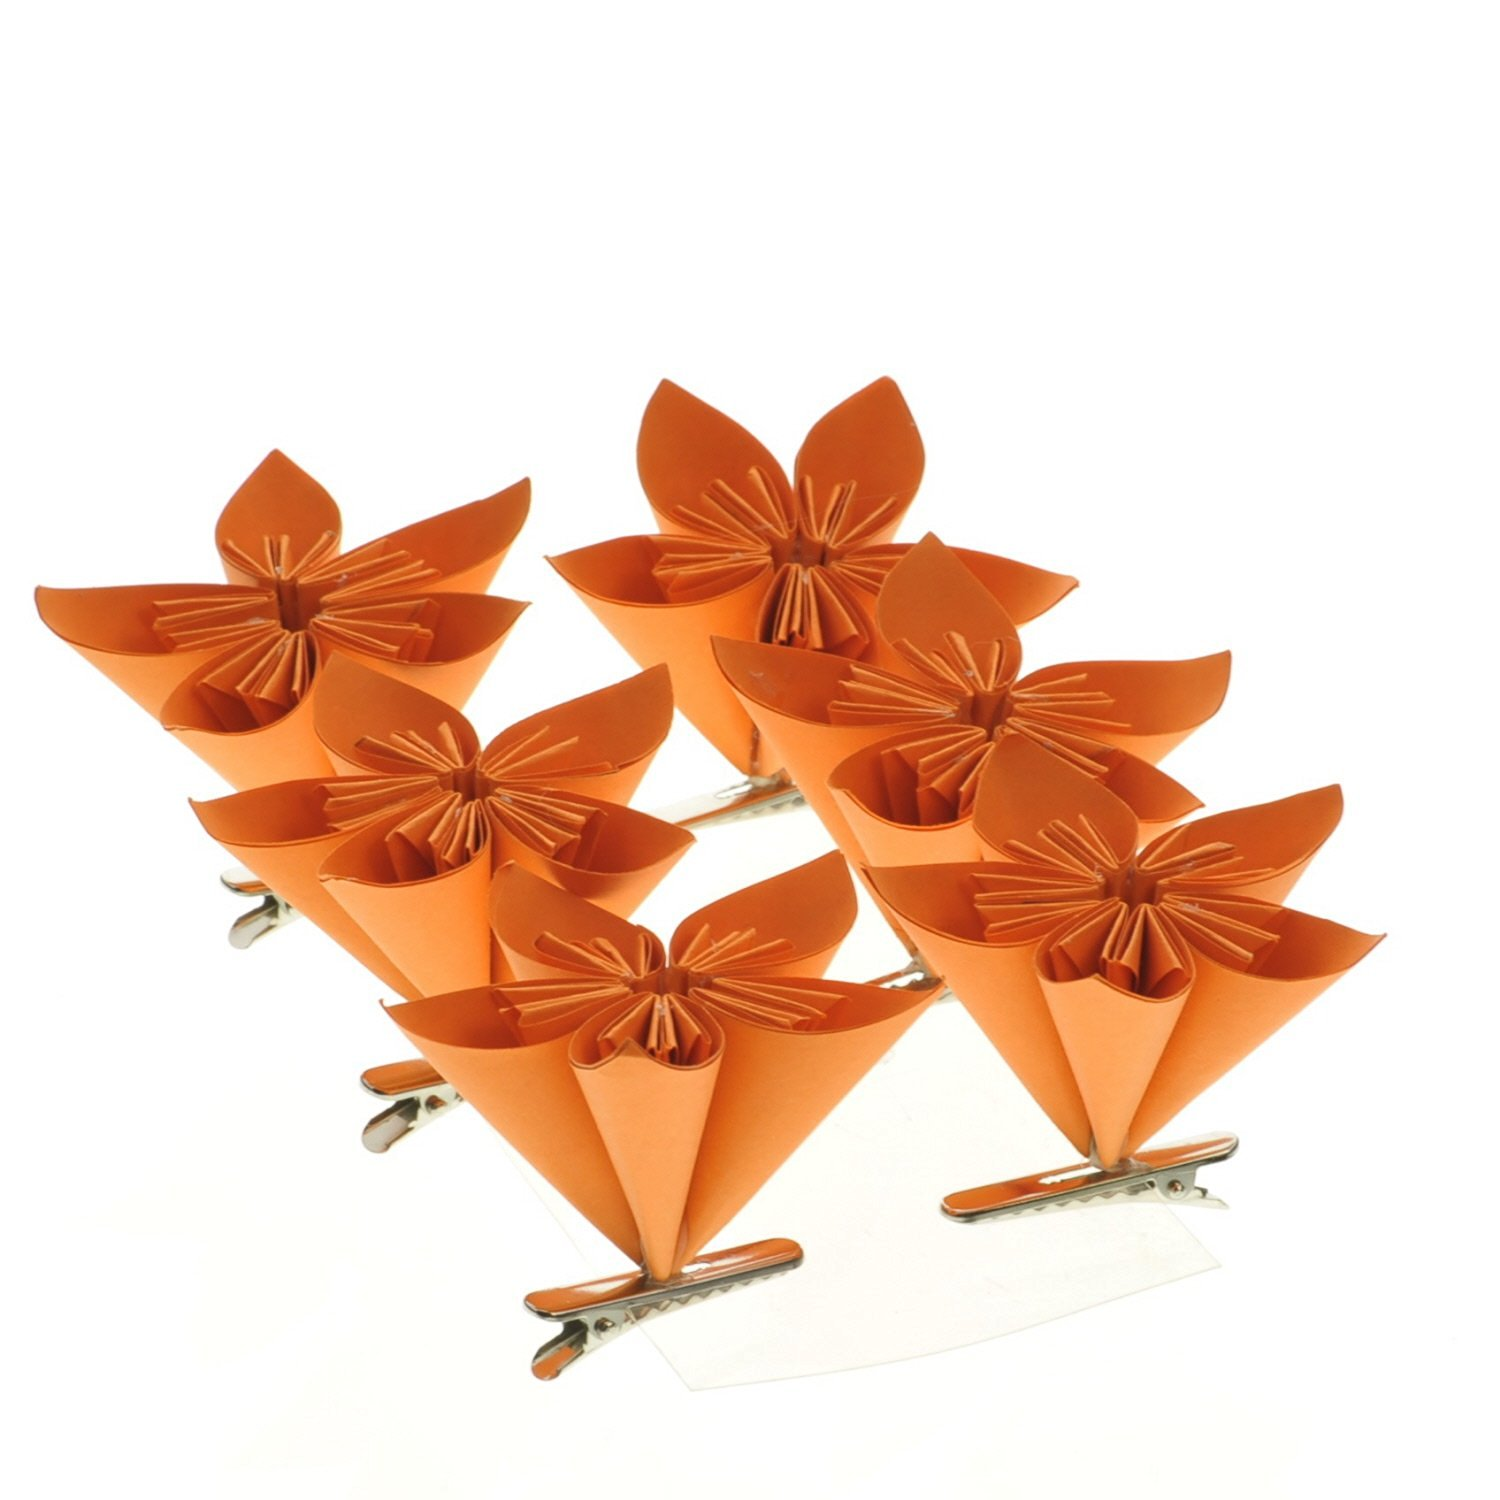 Buy Orange Folded Paper Flower On Clip Box Of 6 In Cheap Price On